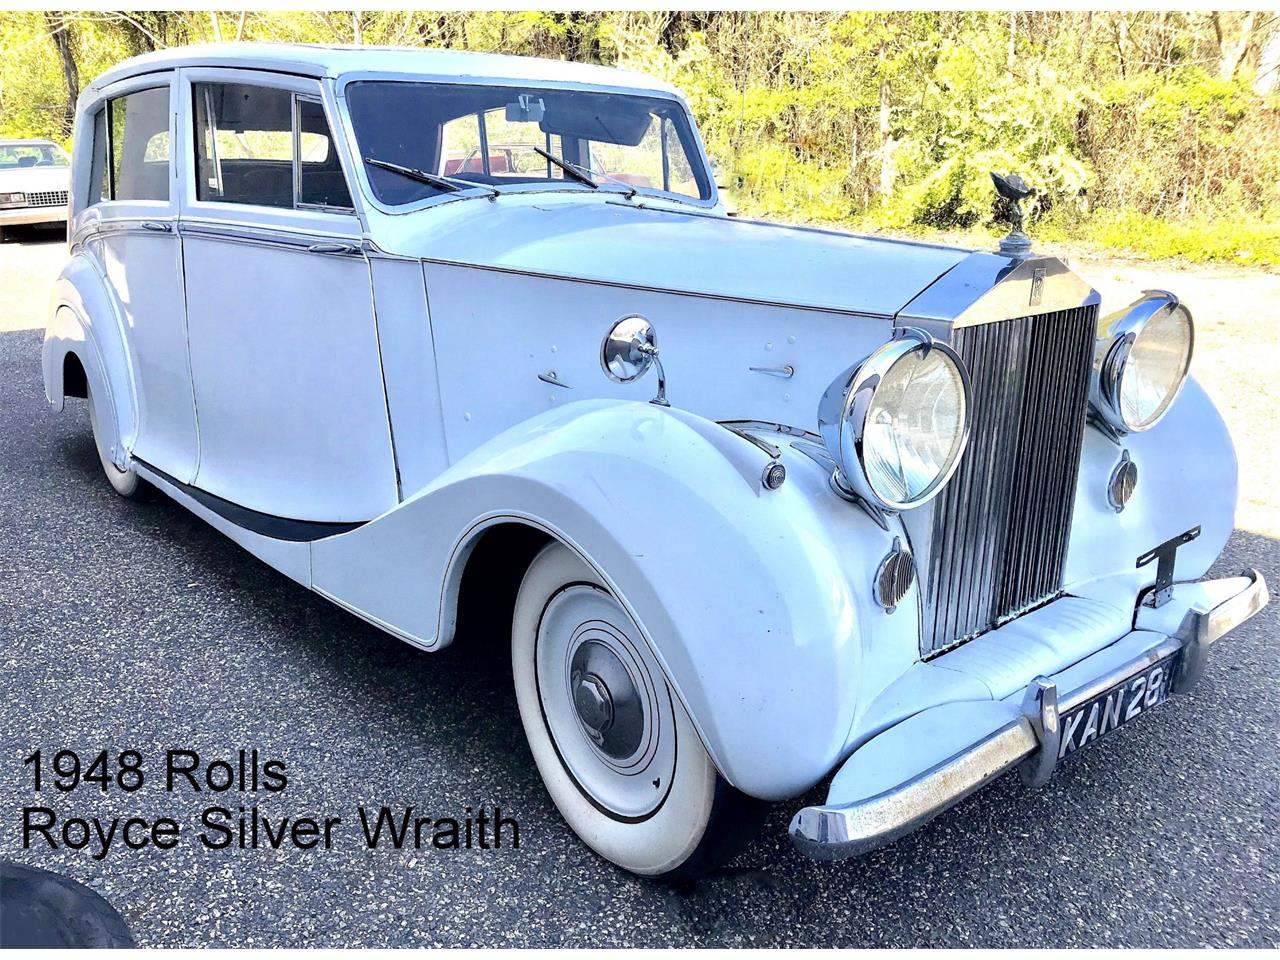 1948 Rolls-Royce Silver Wraith for sale in Stratford, NJ – photo 3